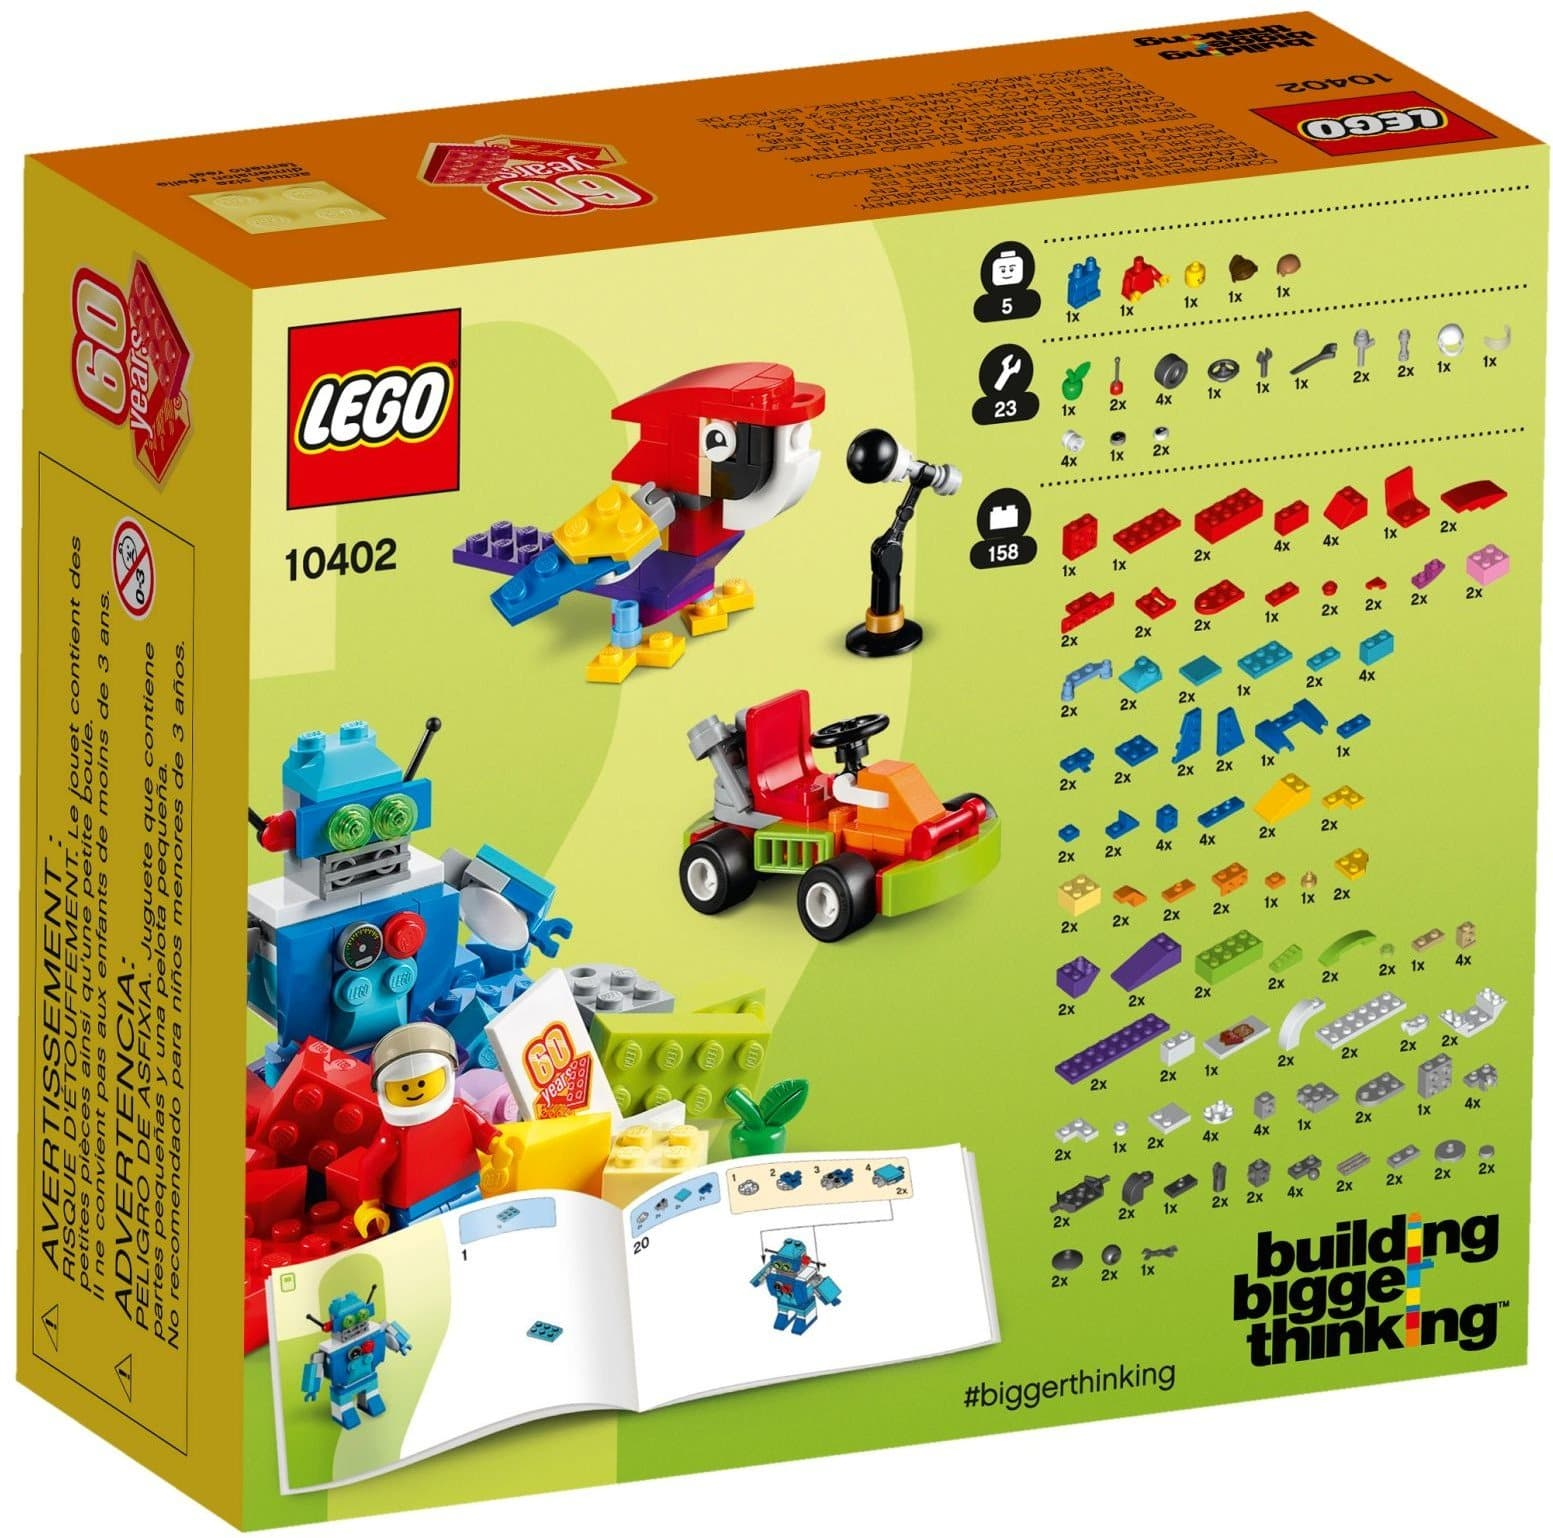 לגו 10402 Lego - כיף בעתיד freeshipping - TheBrick.co.il